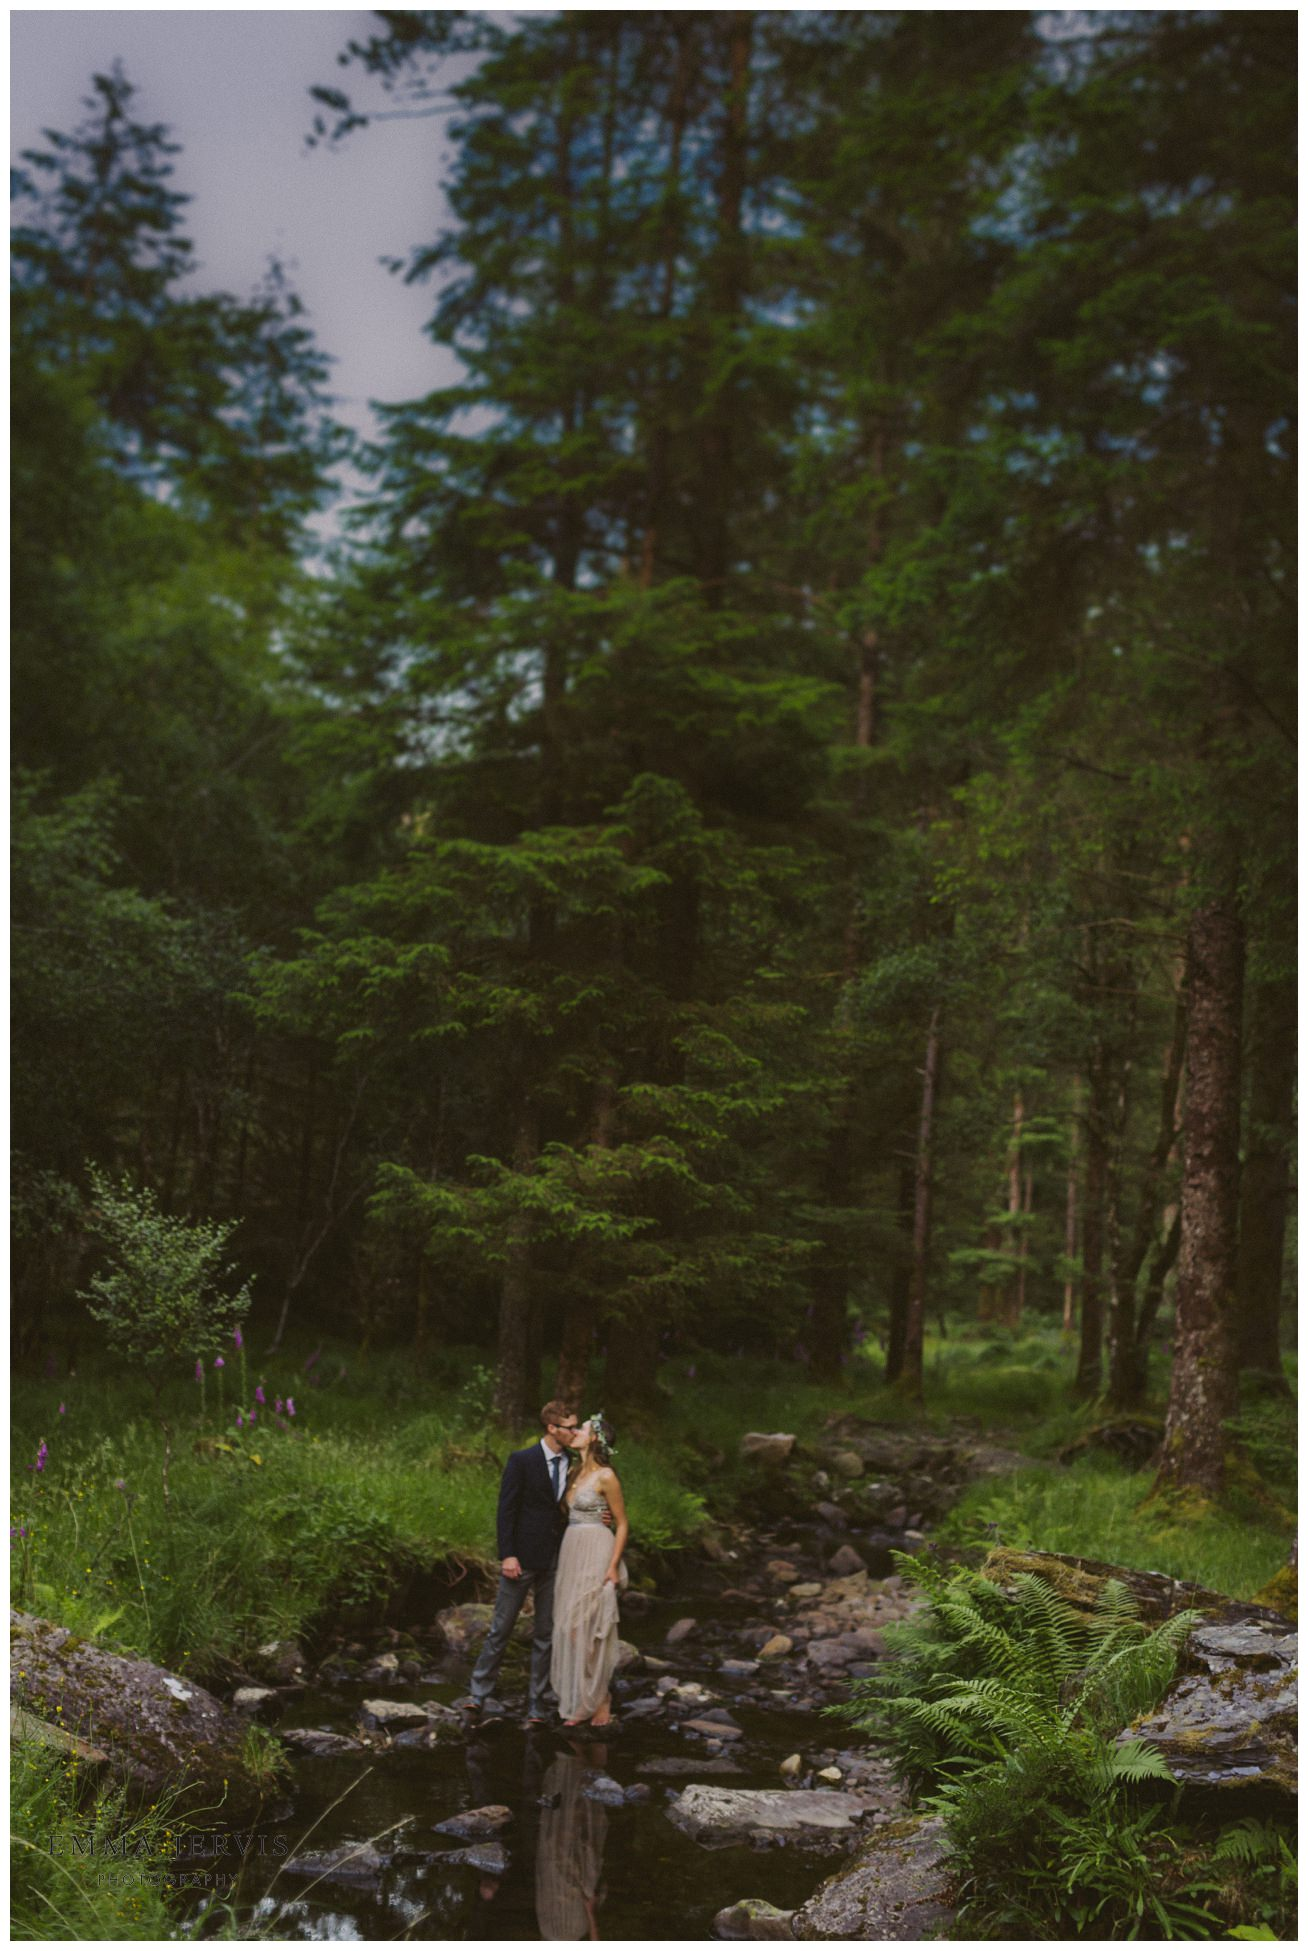 Gougane Barra wedding forest couple